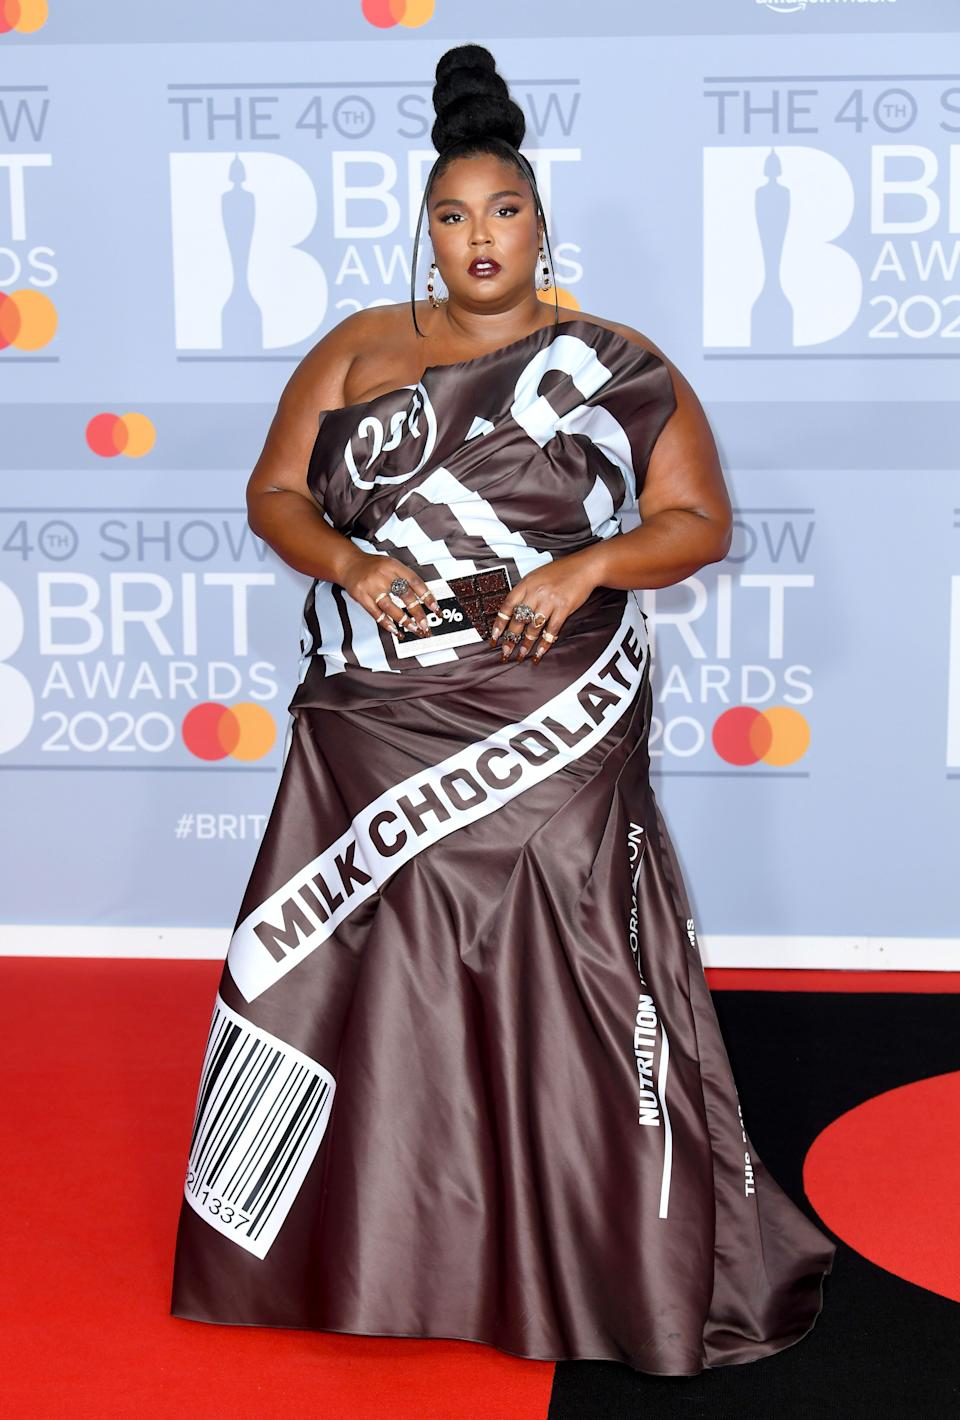 Lizzo arrived at the Brit Awards in a chocolate wrapper  (Photo: Doug Peters/EMPICS Entertainment)